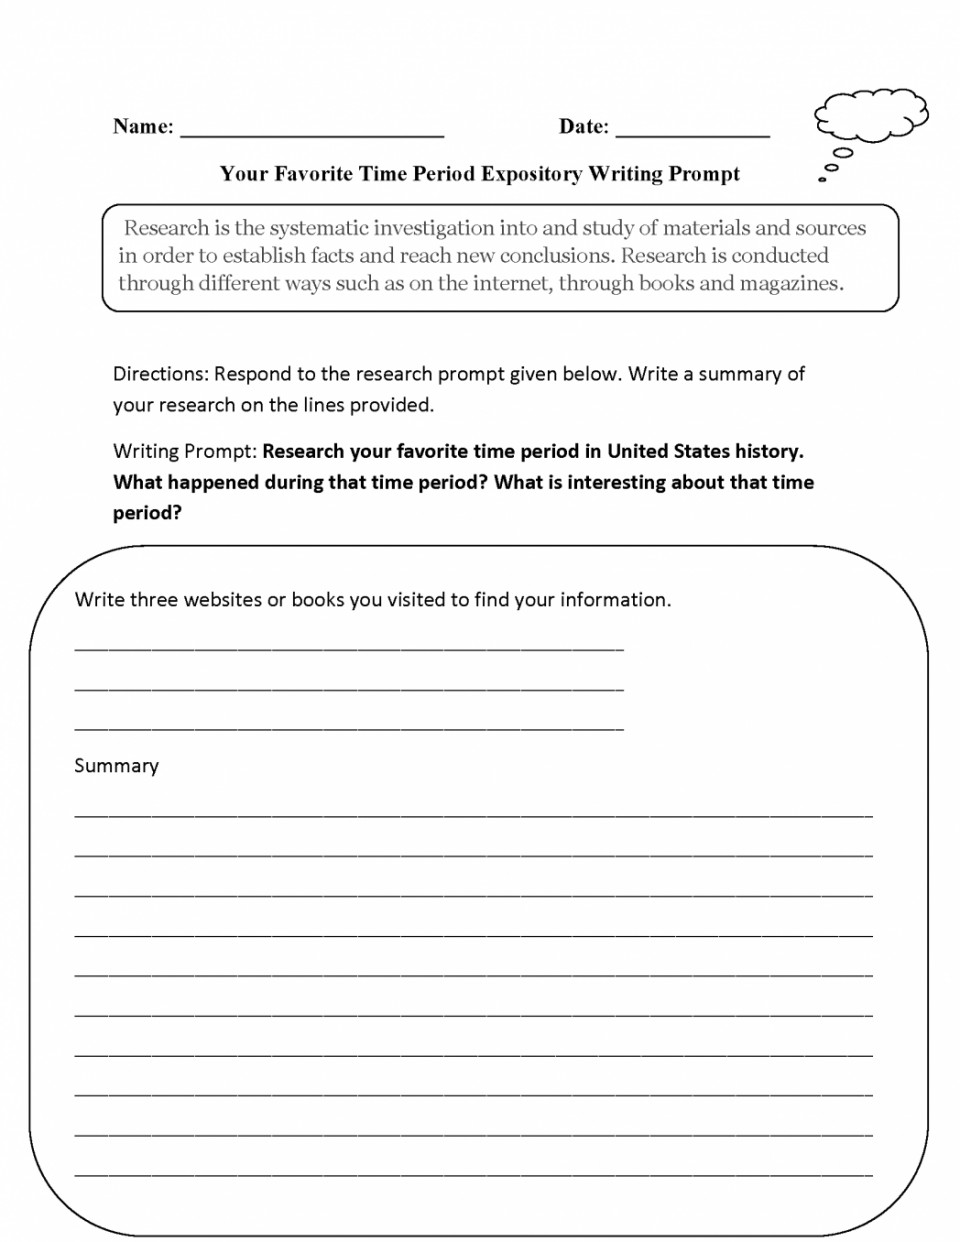 018 Essay Example Good Informative Topics Prompts Favorite Time Period Expository Writing P To Write An On The Topic Of Immigration Remarkable For High School 4th Grade 960